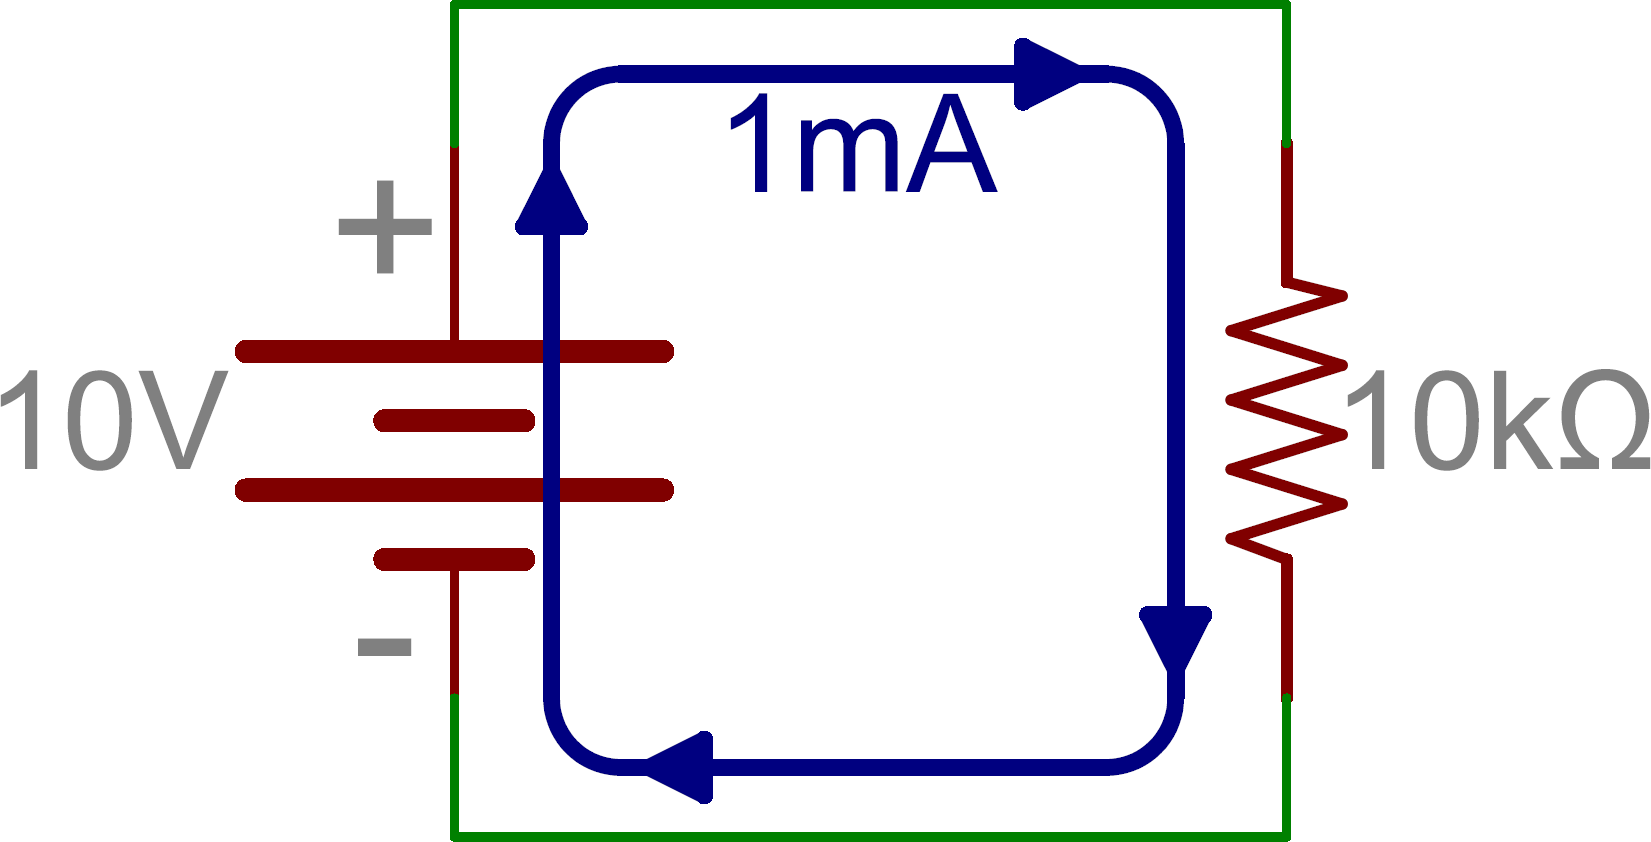 Series And Parallel Circuits Wiring Diagram Provide Instruction So You Can Trace The Circuit Schematic Single Resistor In With Battery